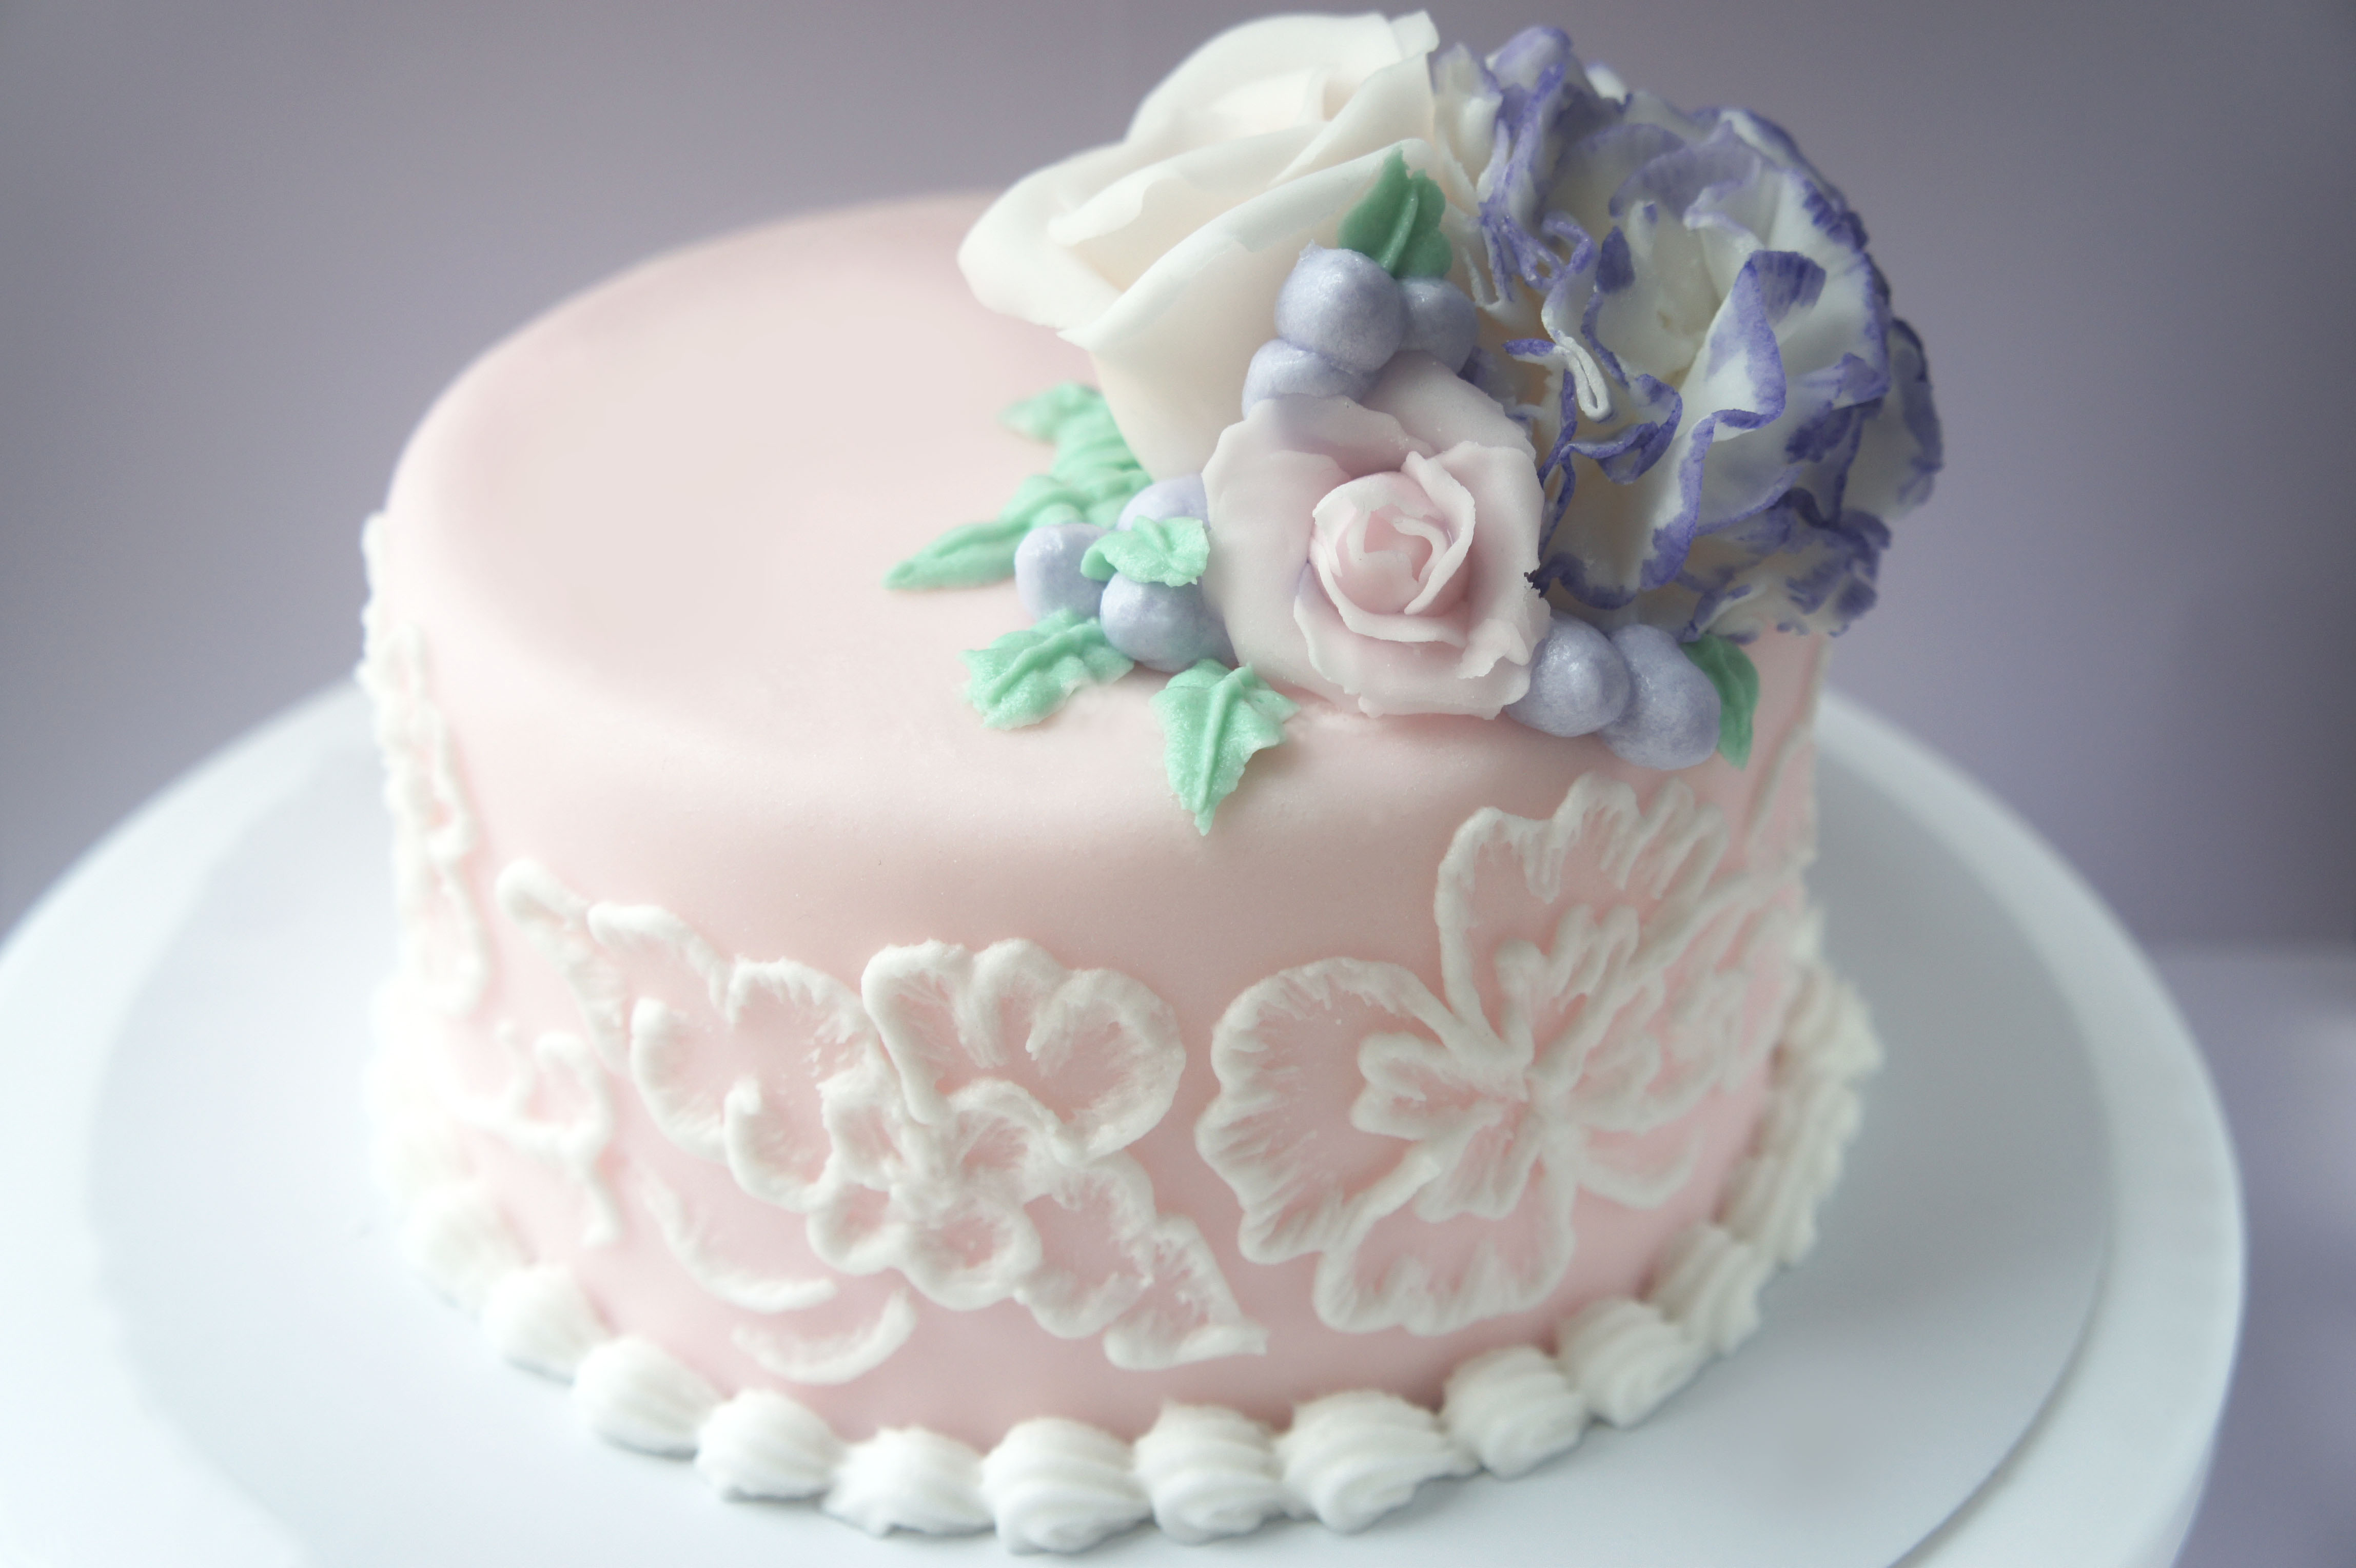 recipe: royal icing recipe for piping on fondant [31]